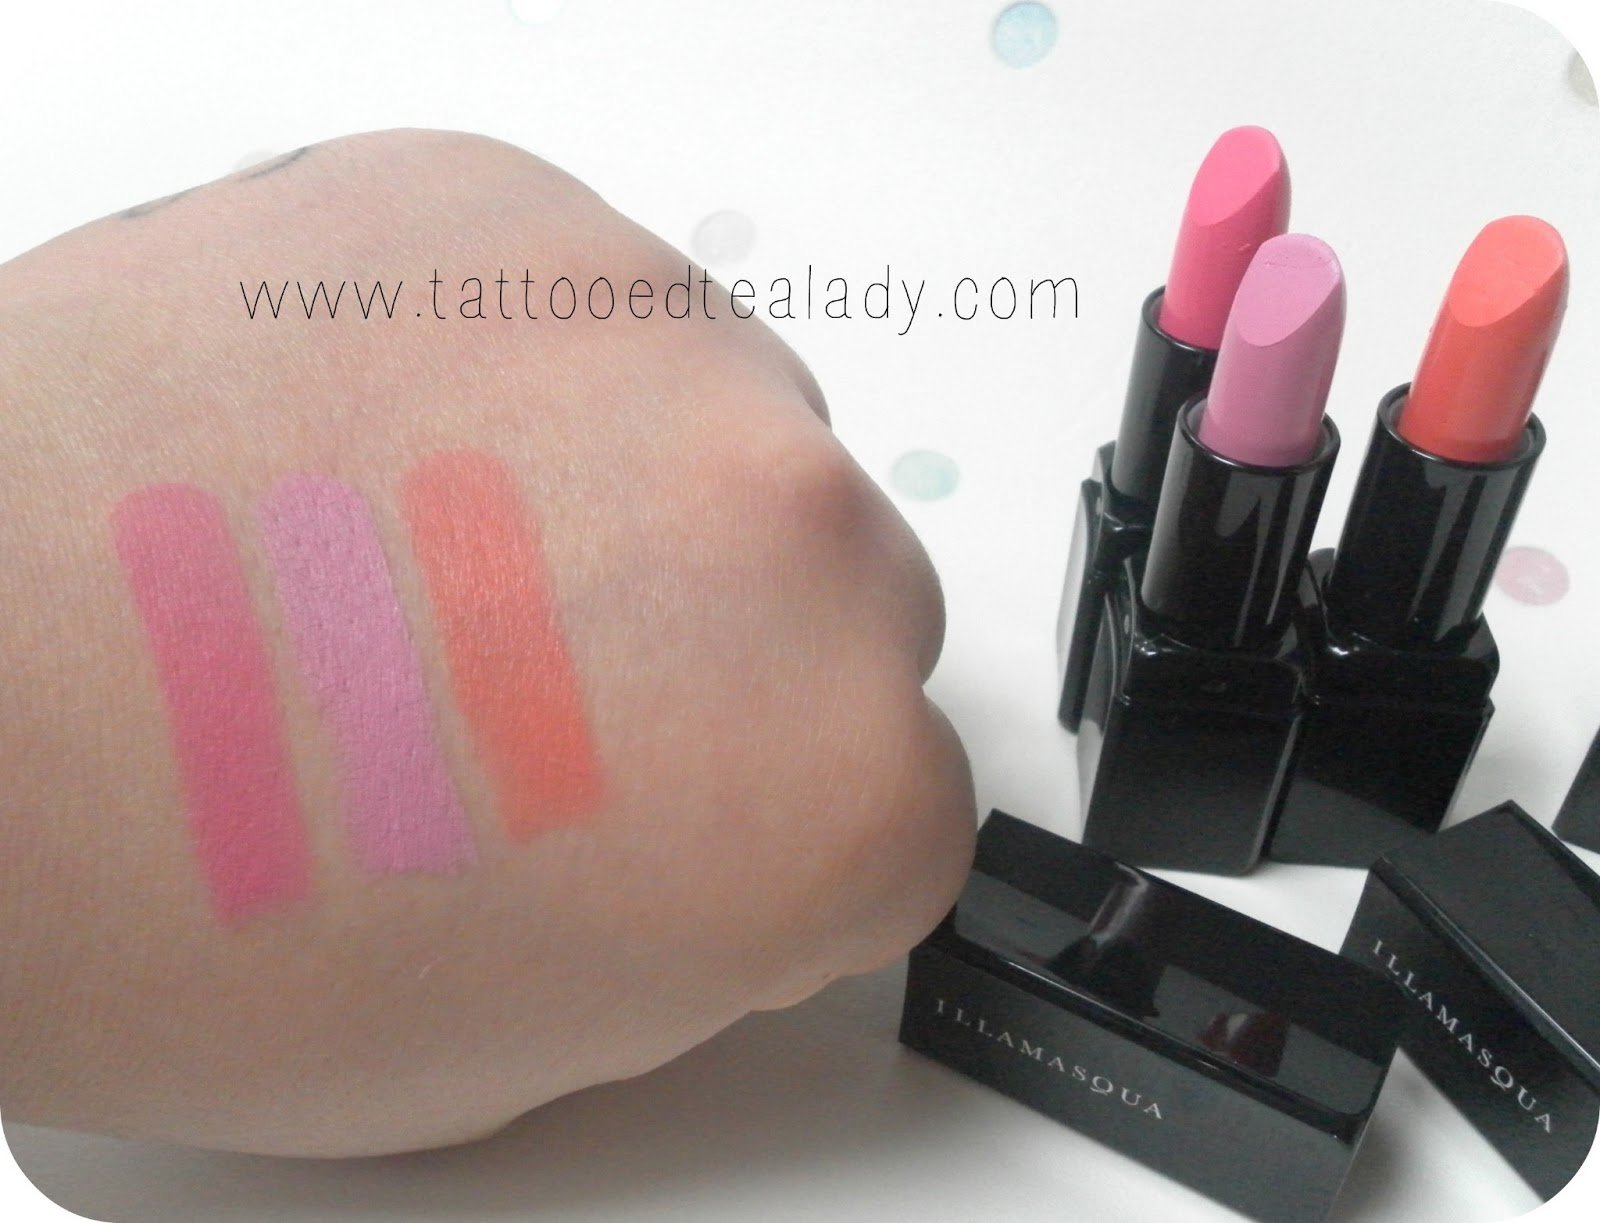 Illamasqua Lipstick glides on smoothly and doesn't give up without a fight for the perfect all-night pout. A must have for professional make-up artists, and those who want to make a statement. read more. See at Wal-Mart USA, LLC. LINKSHARE. Illamasqua Illamasqua Lipstick Wal-Mart USA, LLC $ $